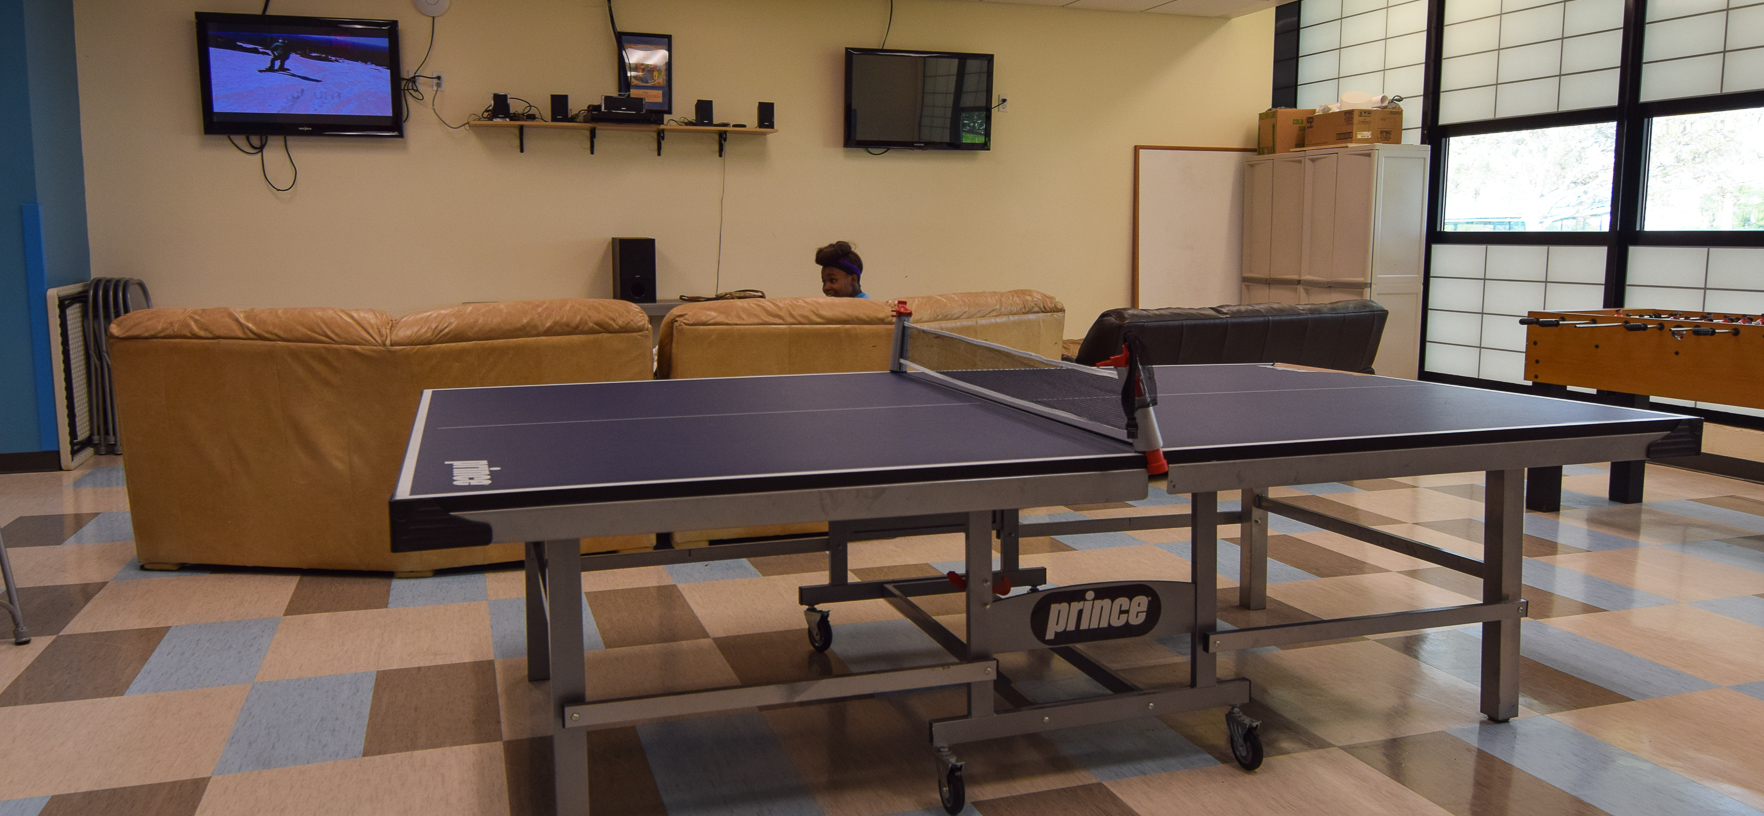 Campbell Park Teen Room with table tennis